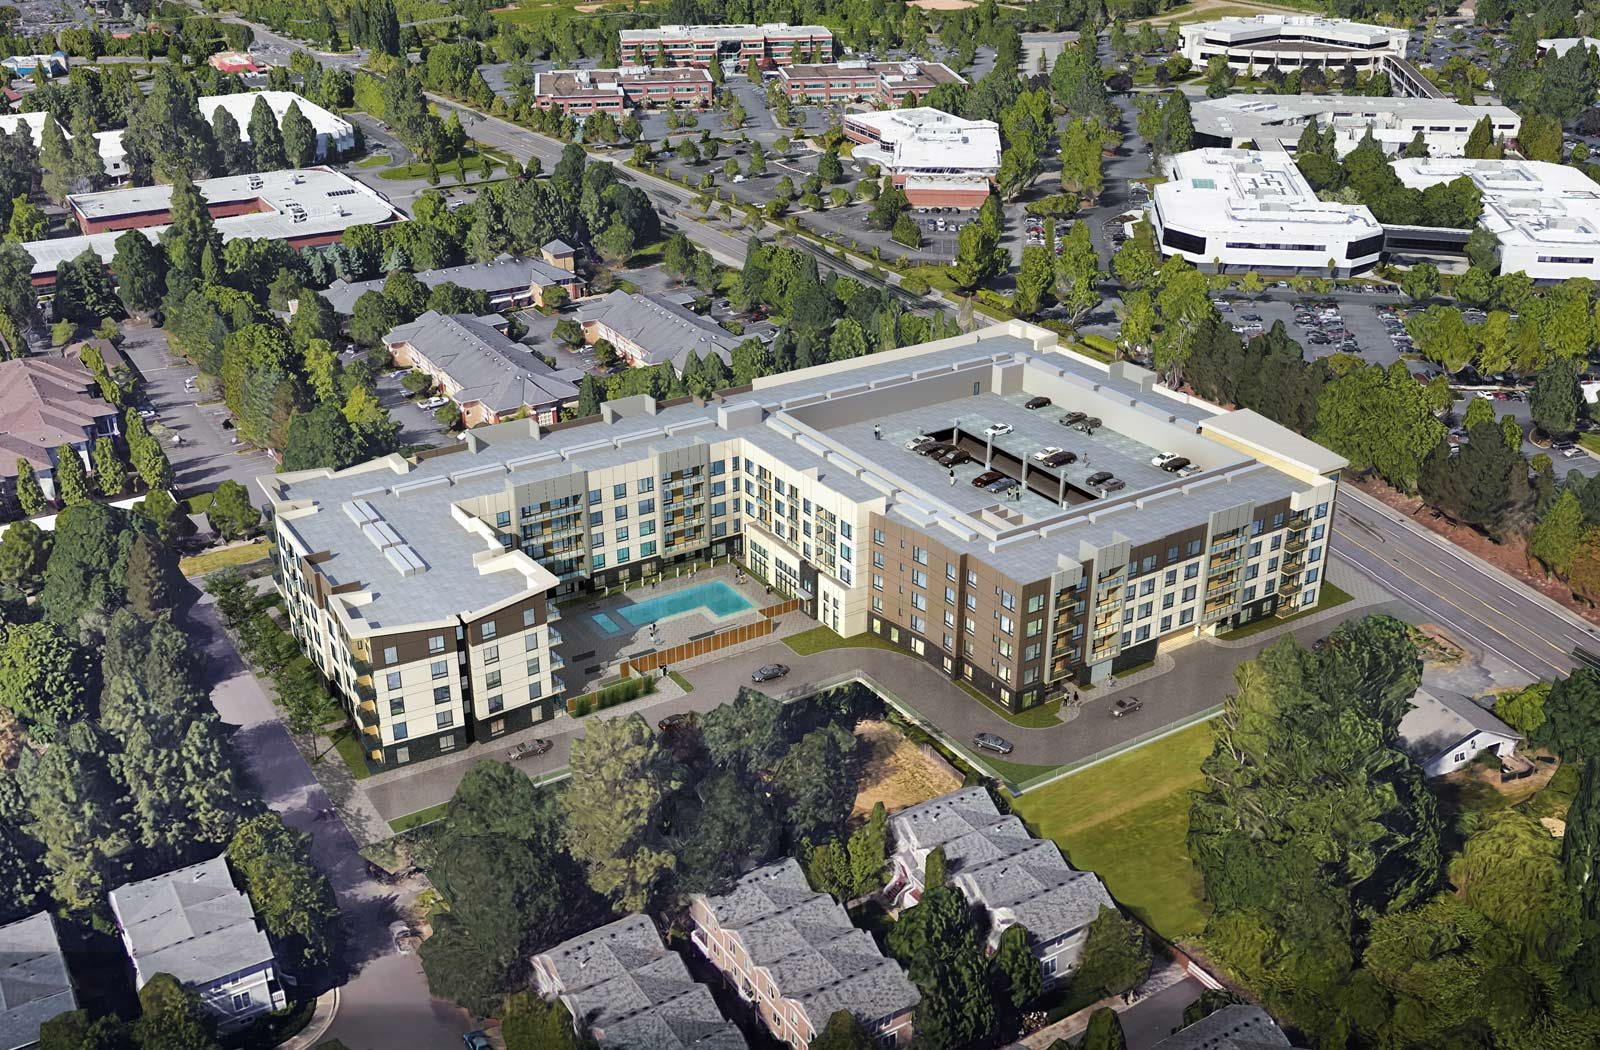 Aerial view of Baseline 158, pet friendly apartments in Beaverton, Oregon